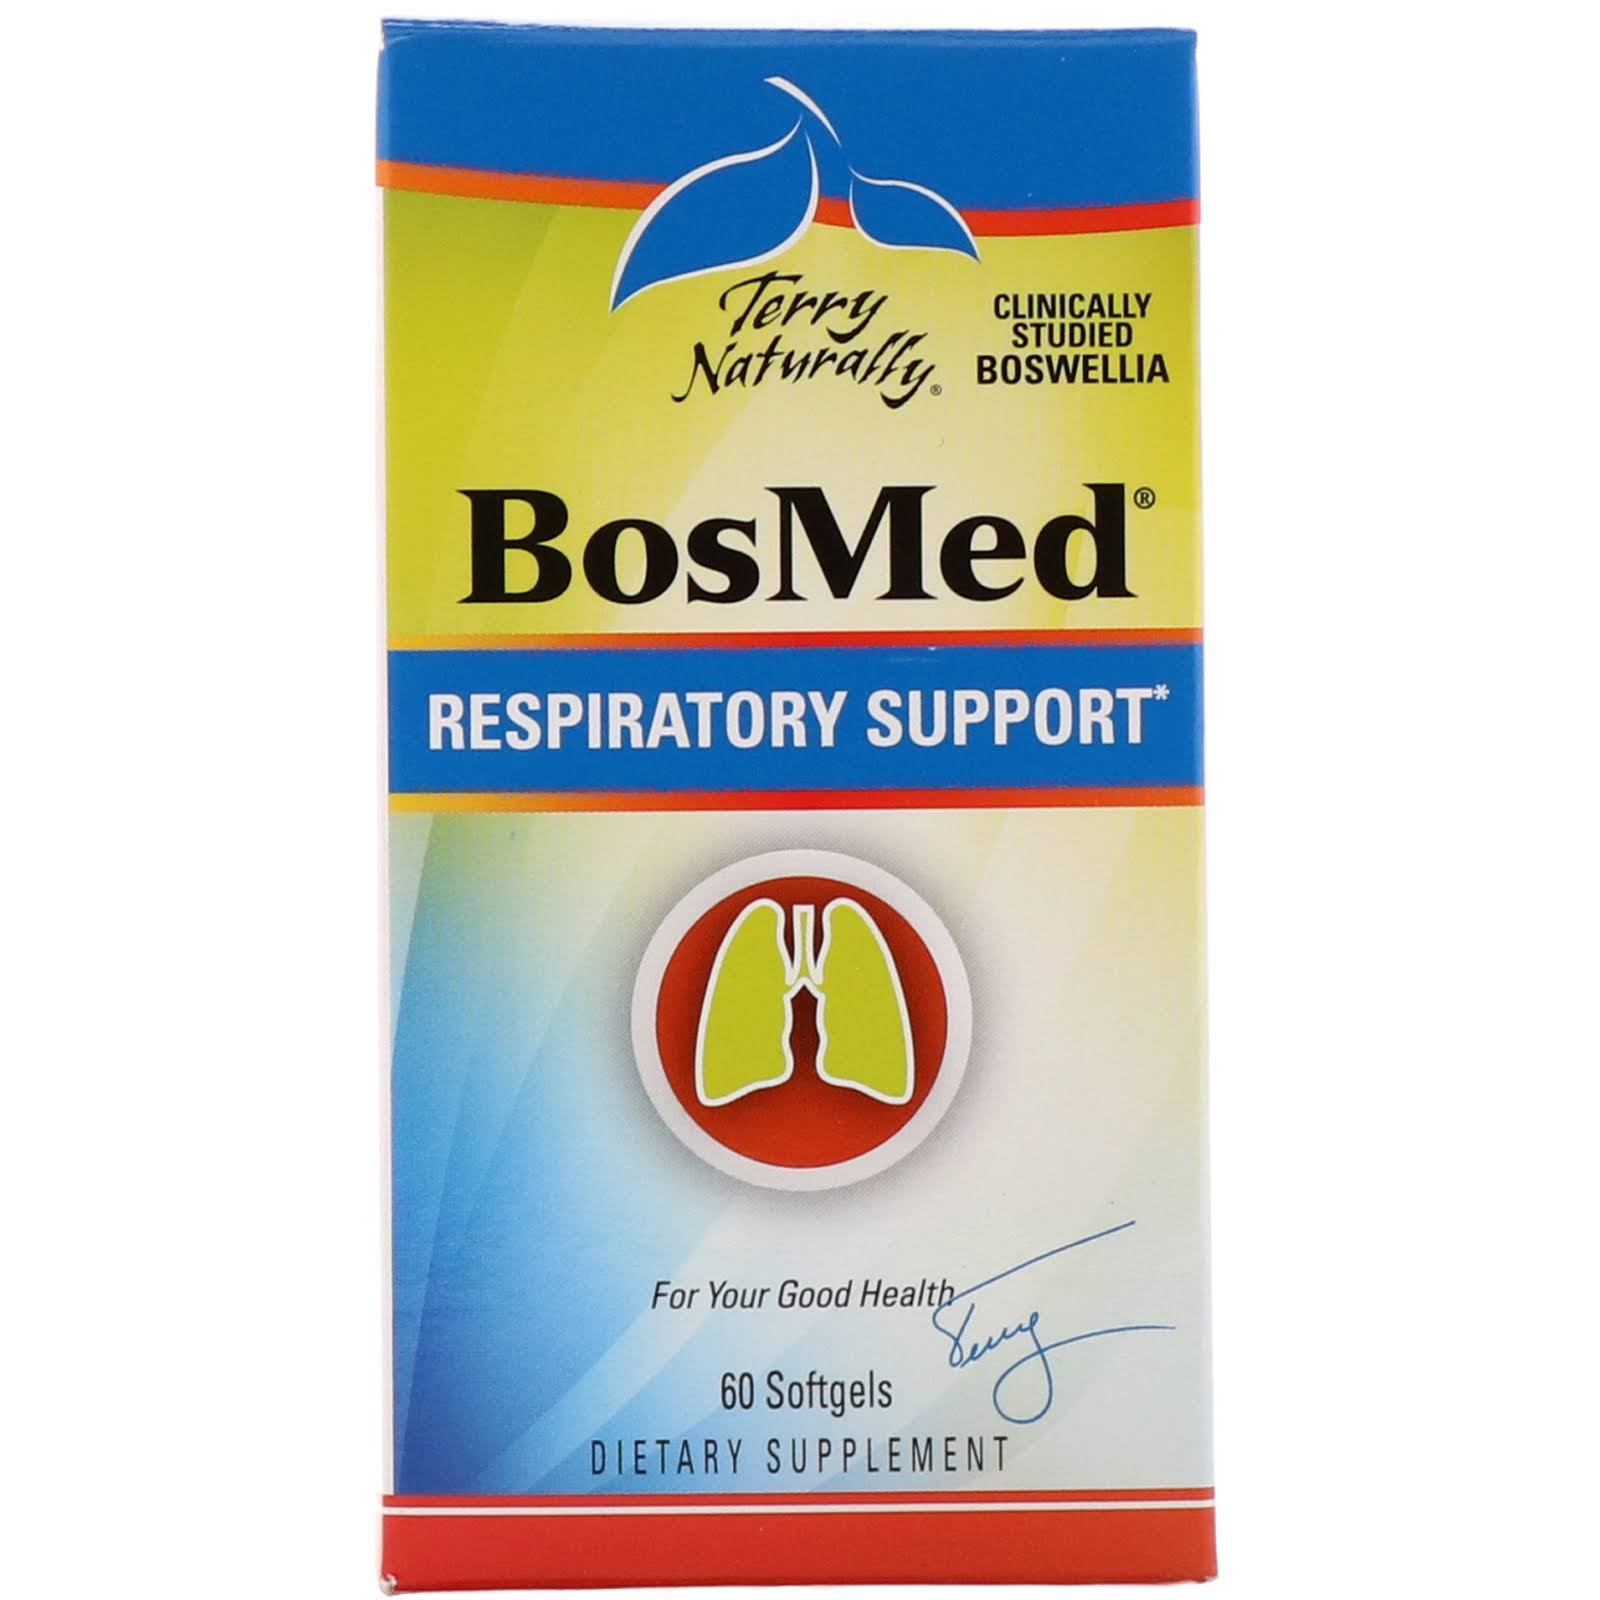 Terry Naturally BosMed Respiratory Support - 375mg, x60